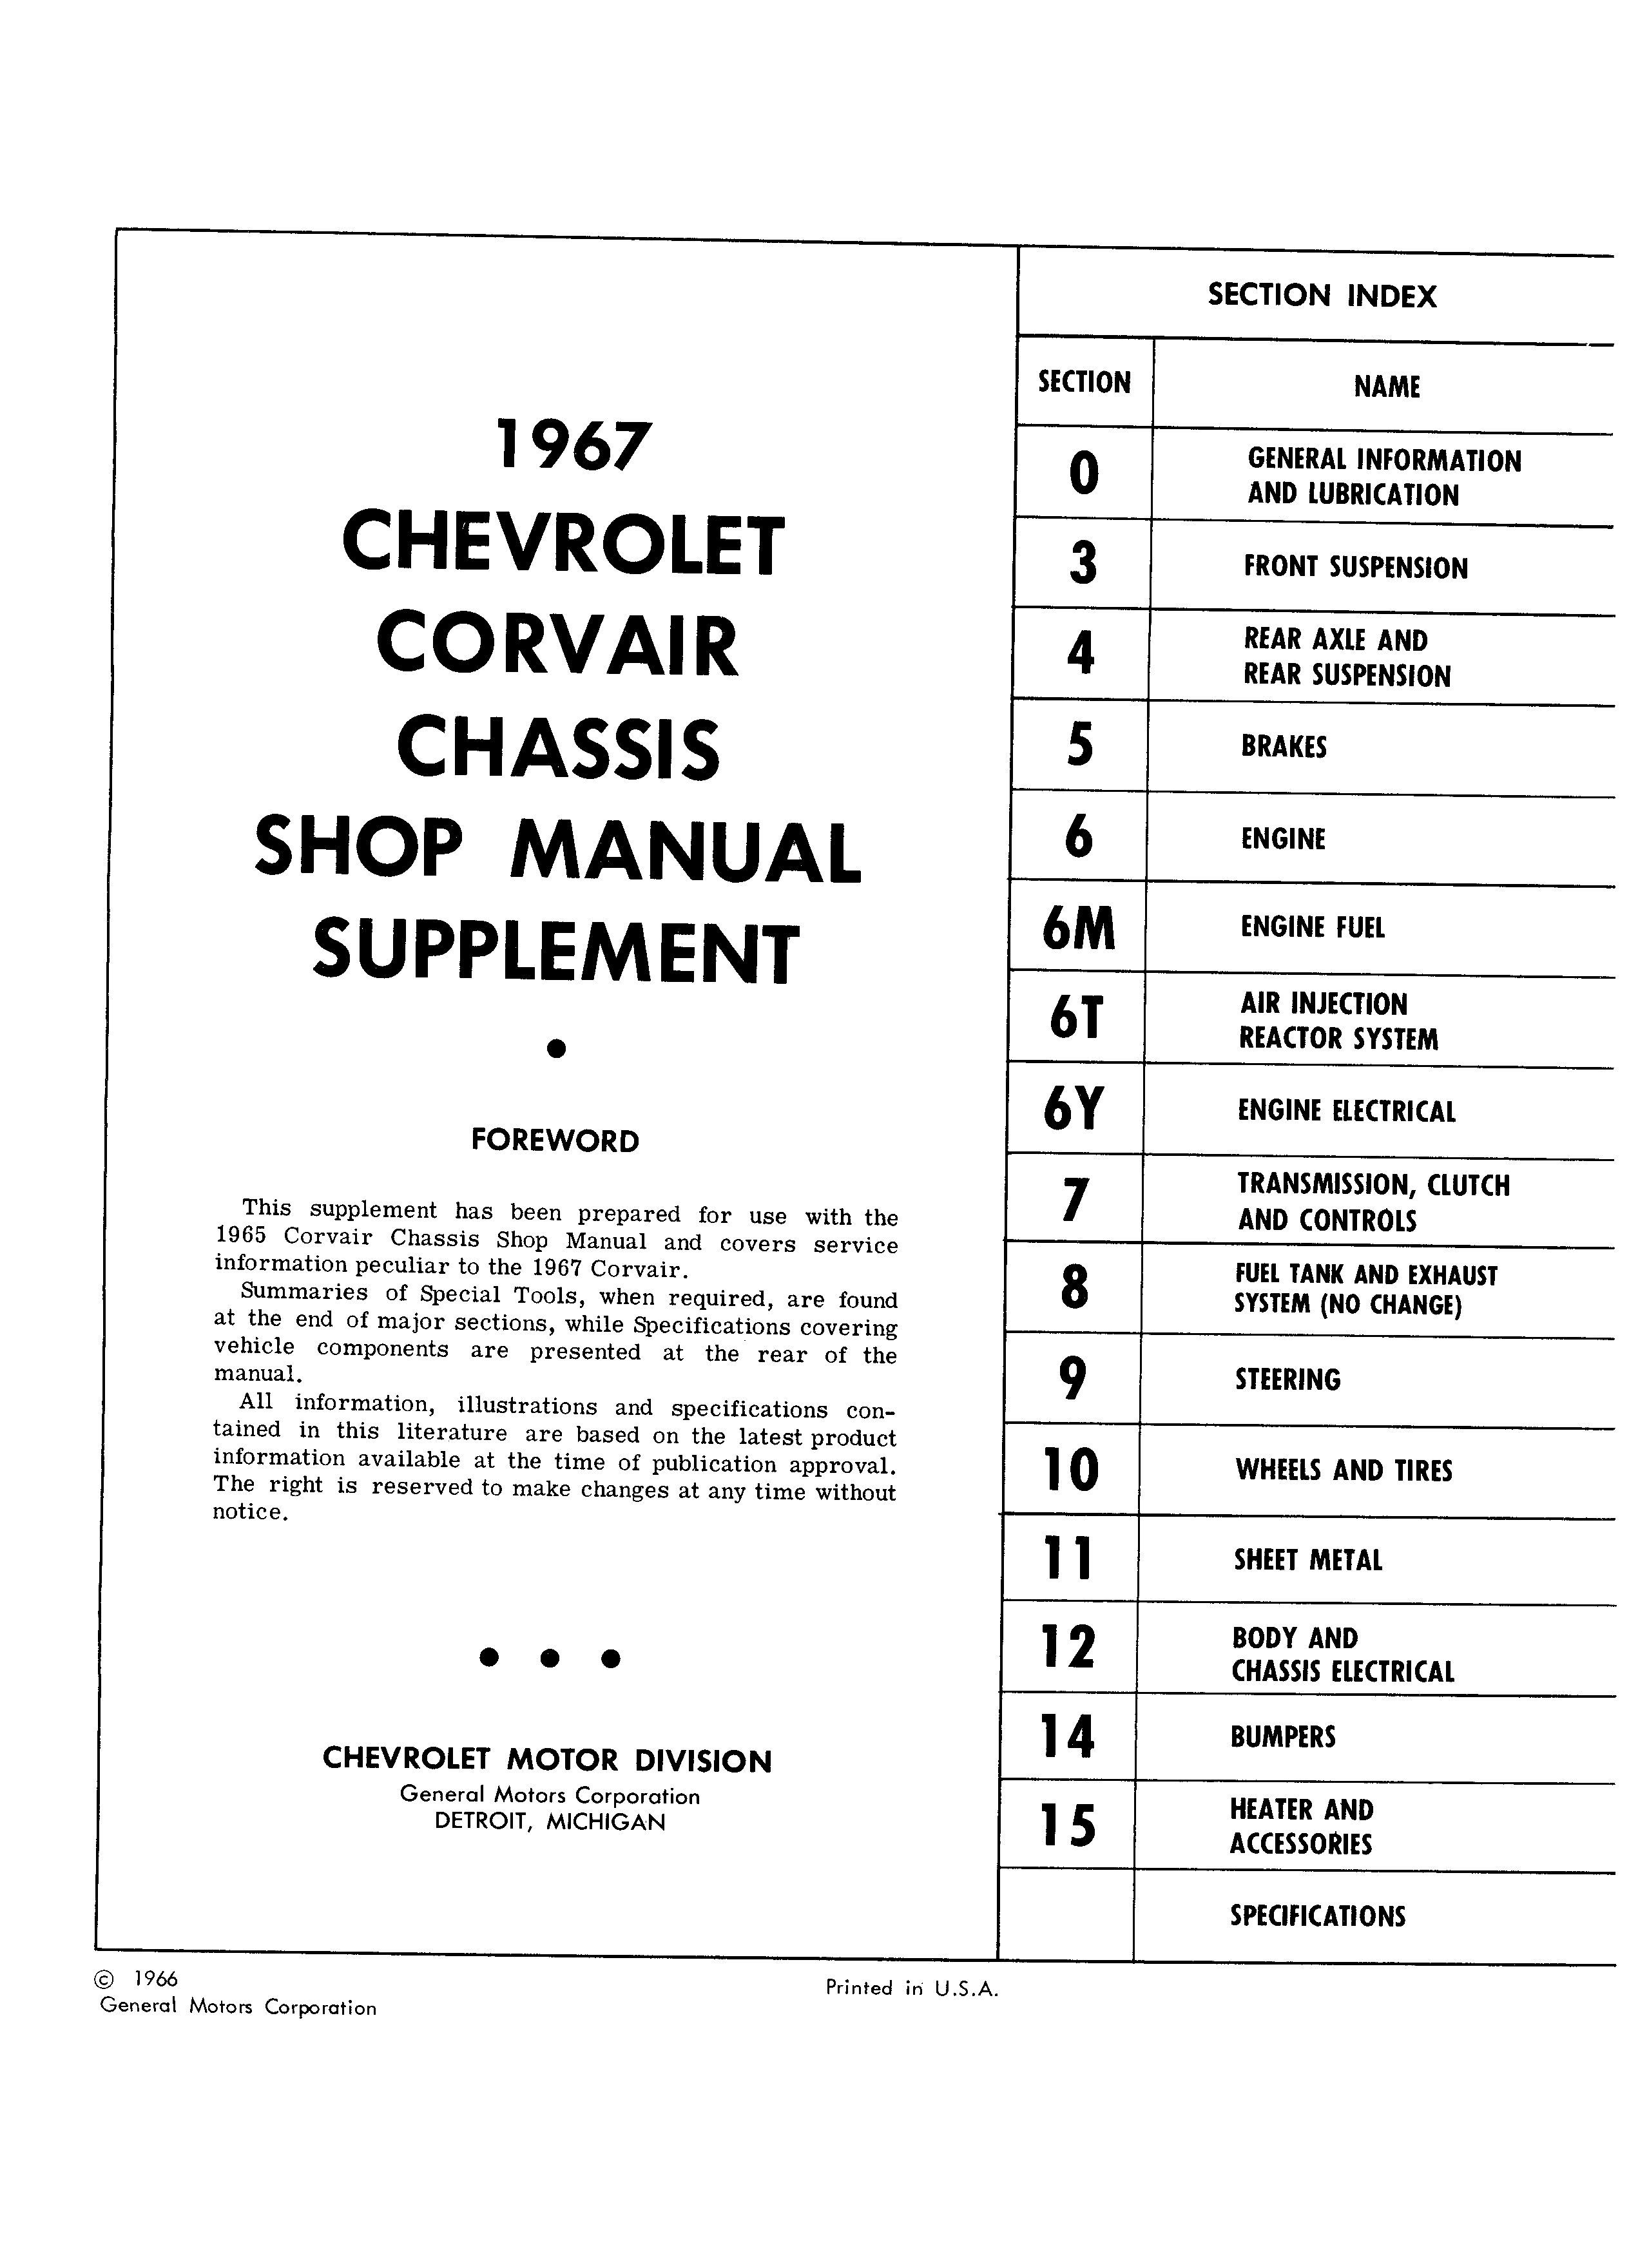 Corvair Chassis Shop Manual Supplement December 1966